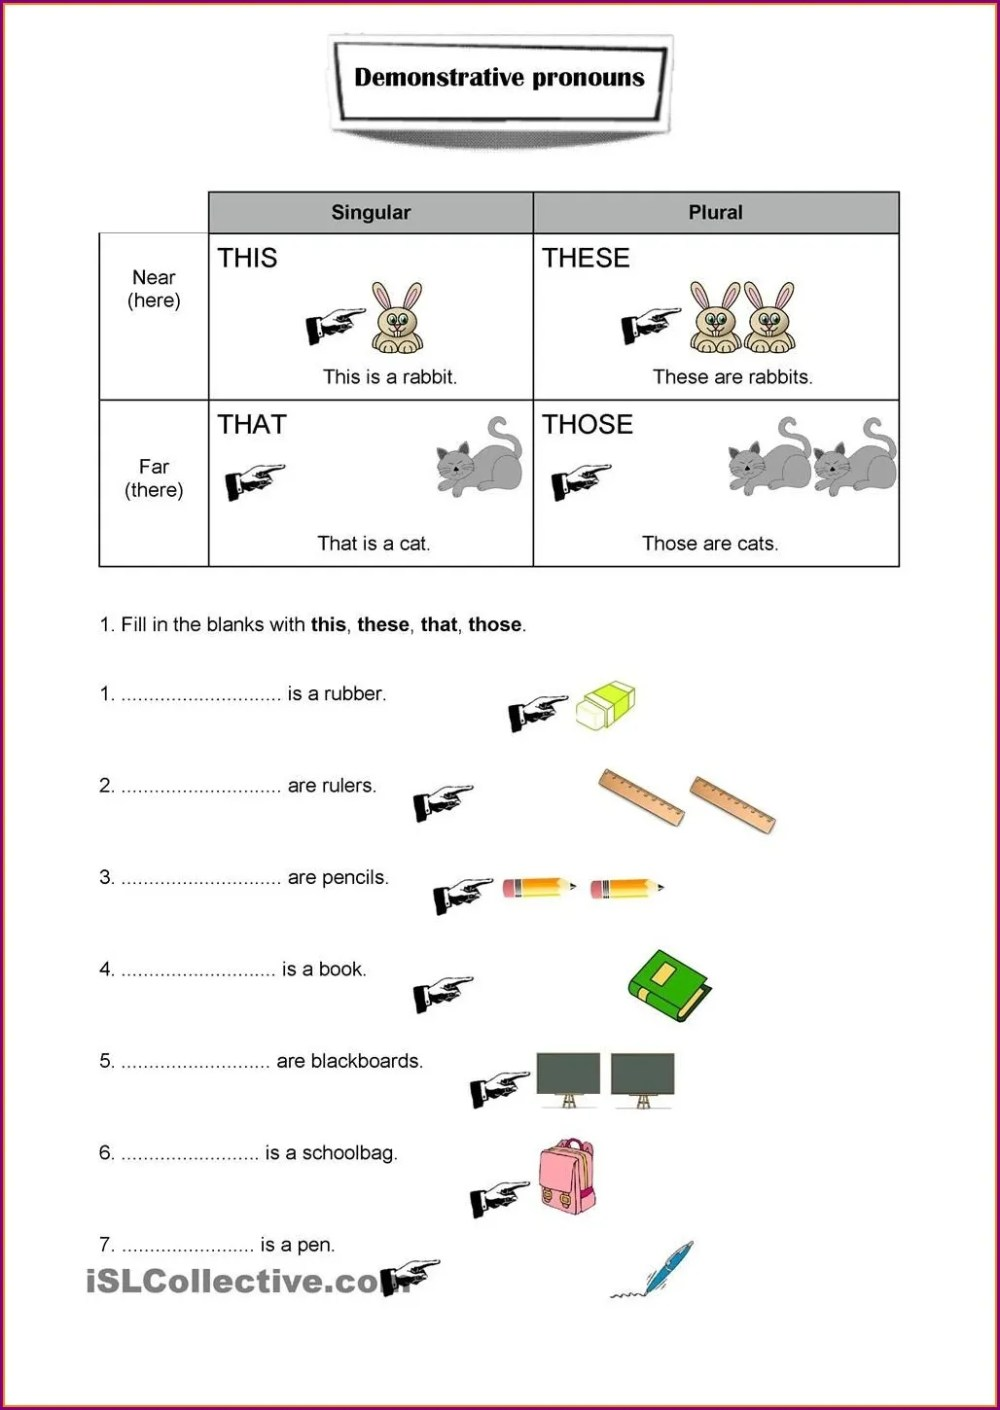 medium resolution of Worksheets Demostrative Pronouns   Printable Worksheets and Activities for  Teachers